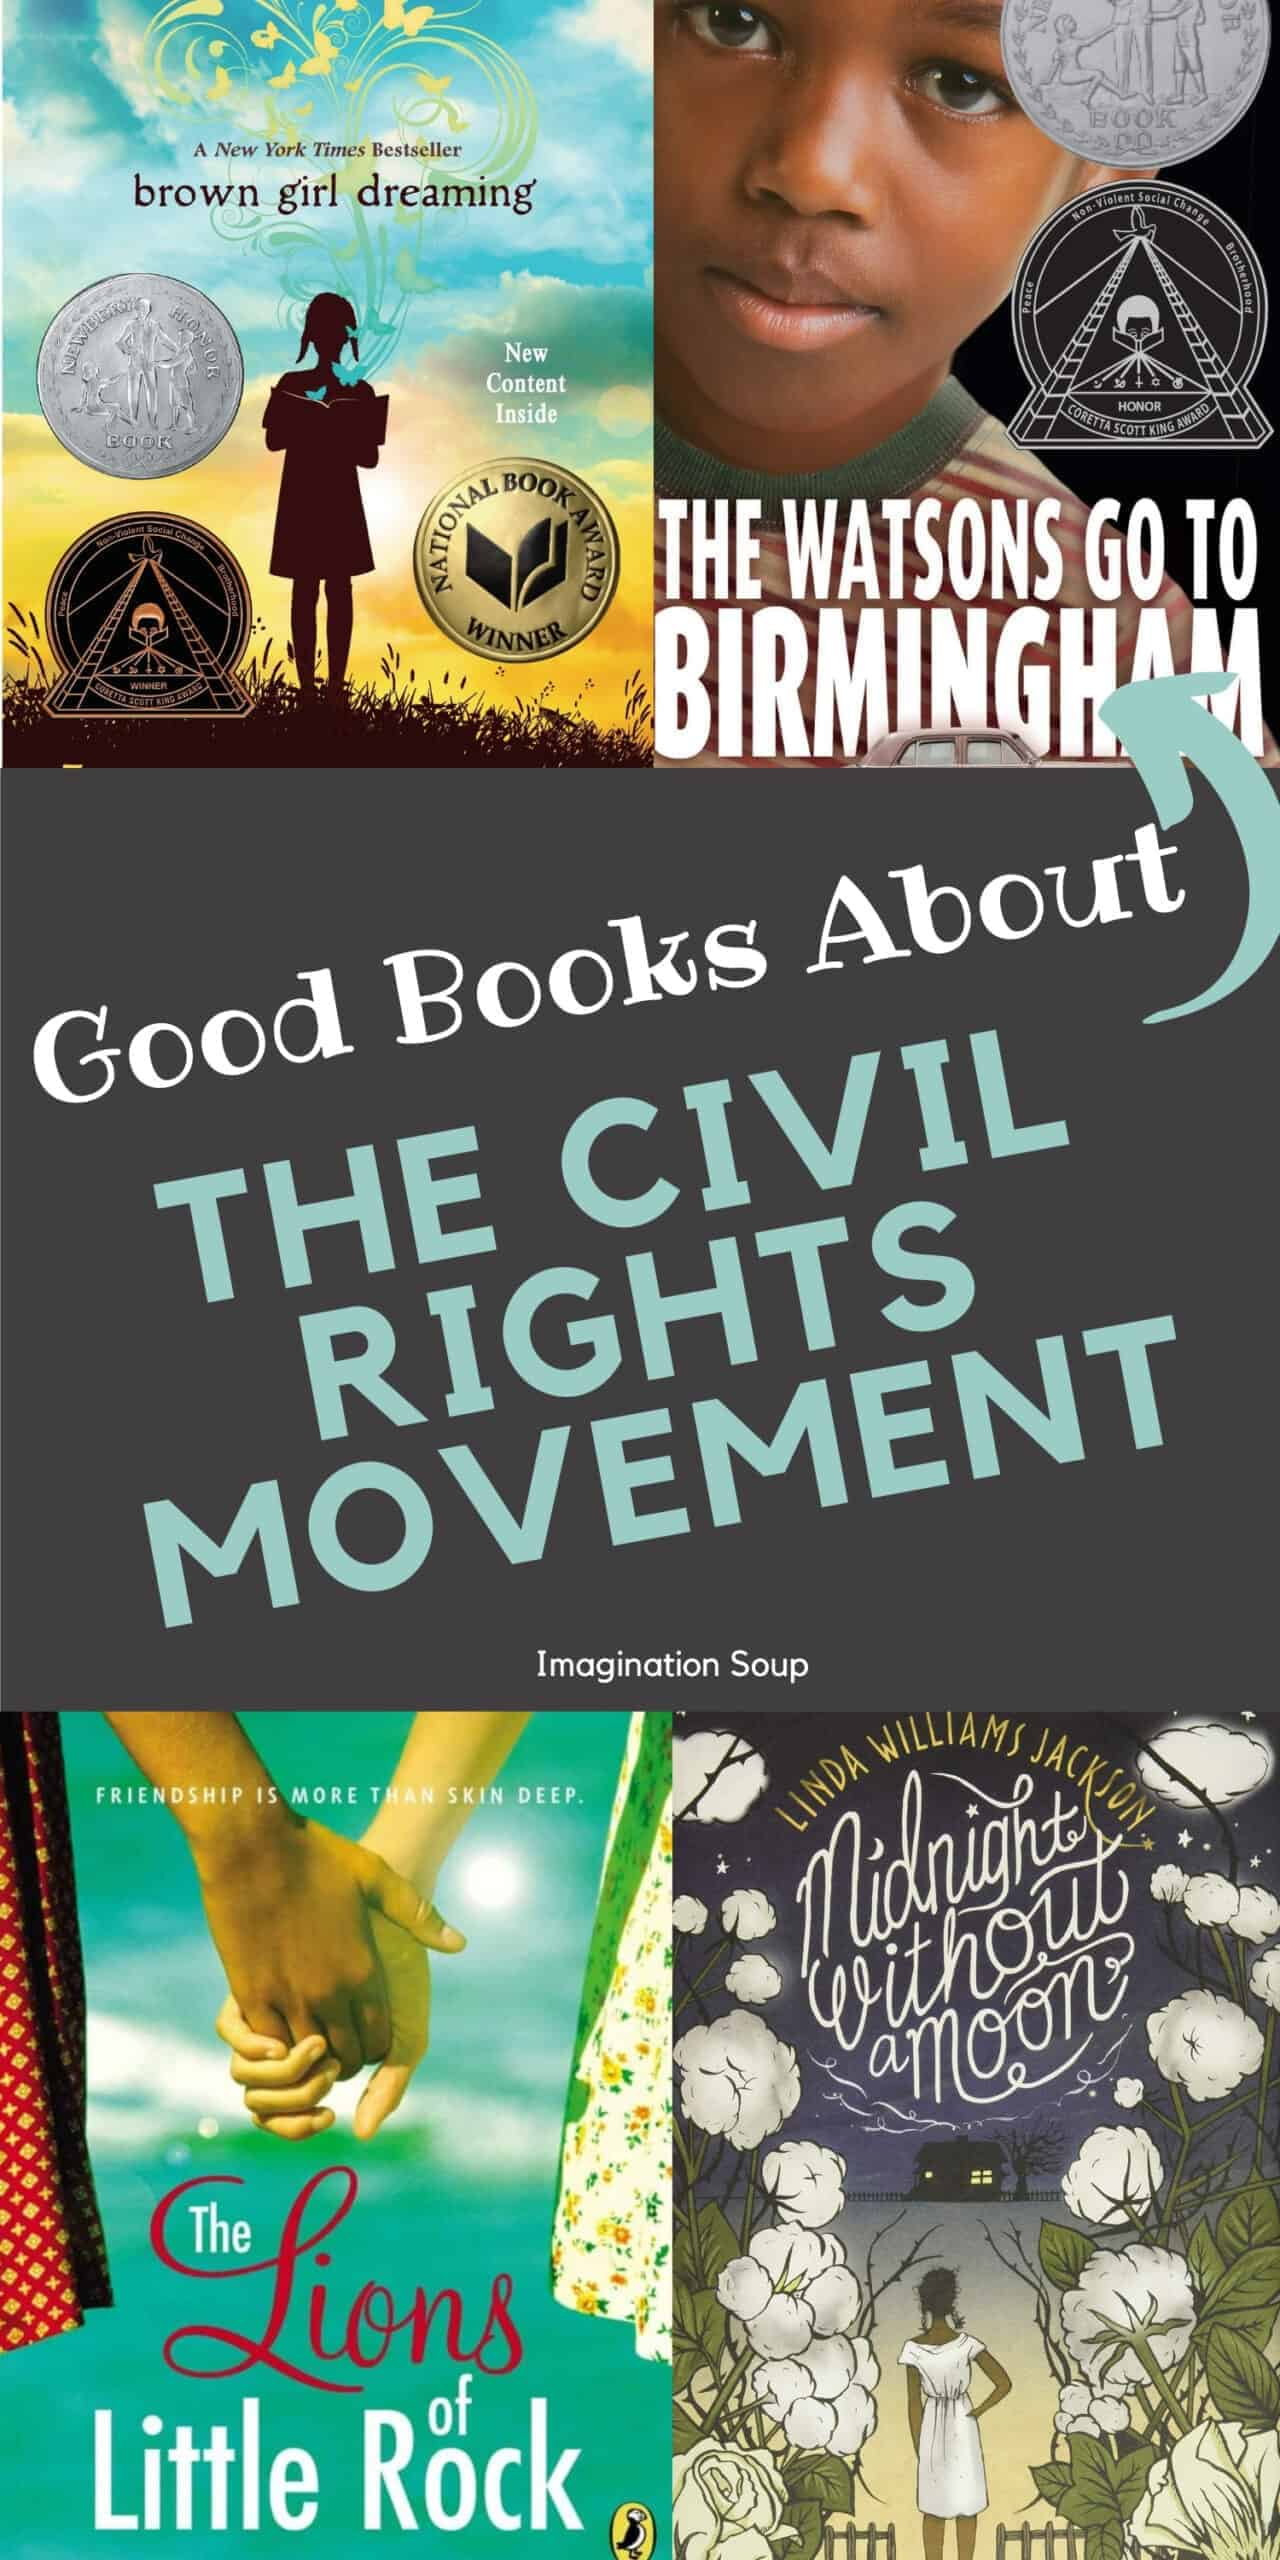 good children's books about the Civil Rights Movement